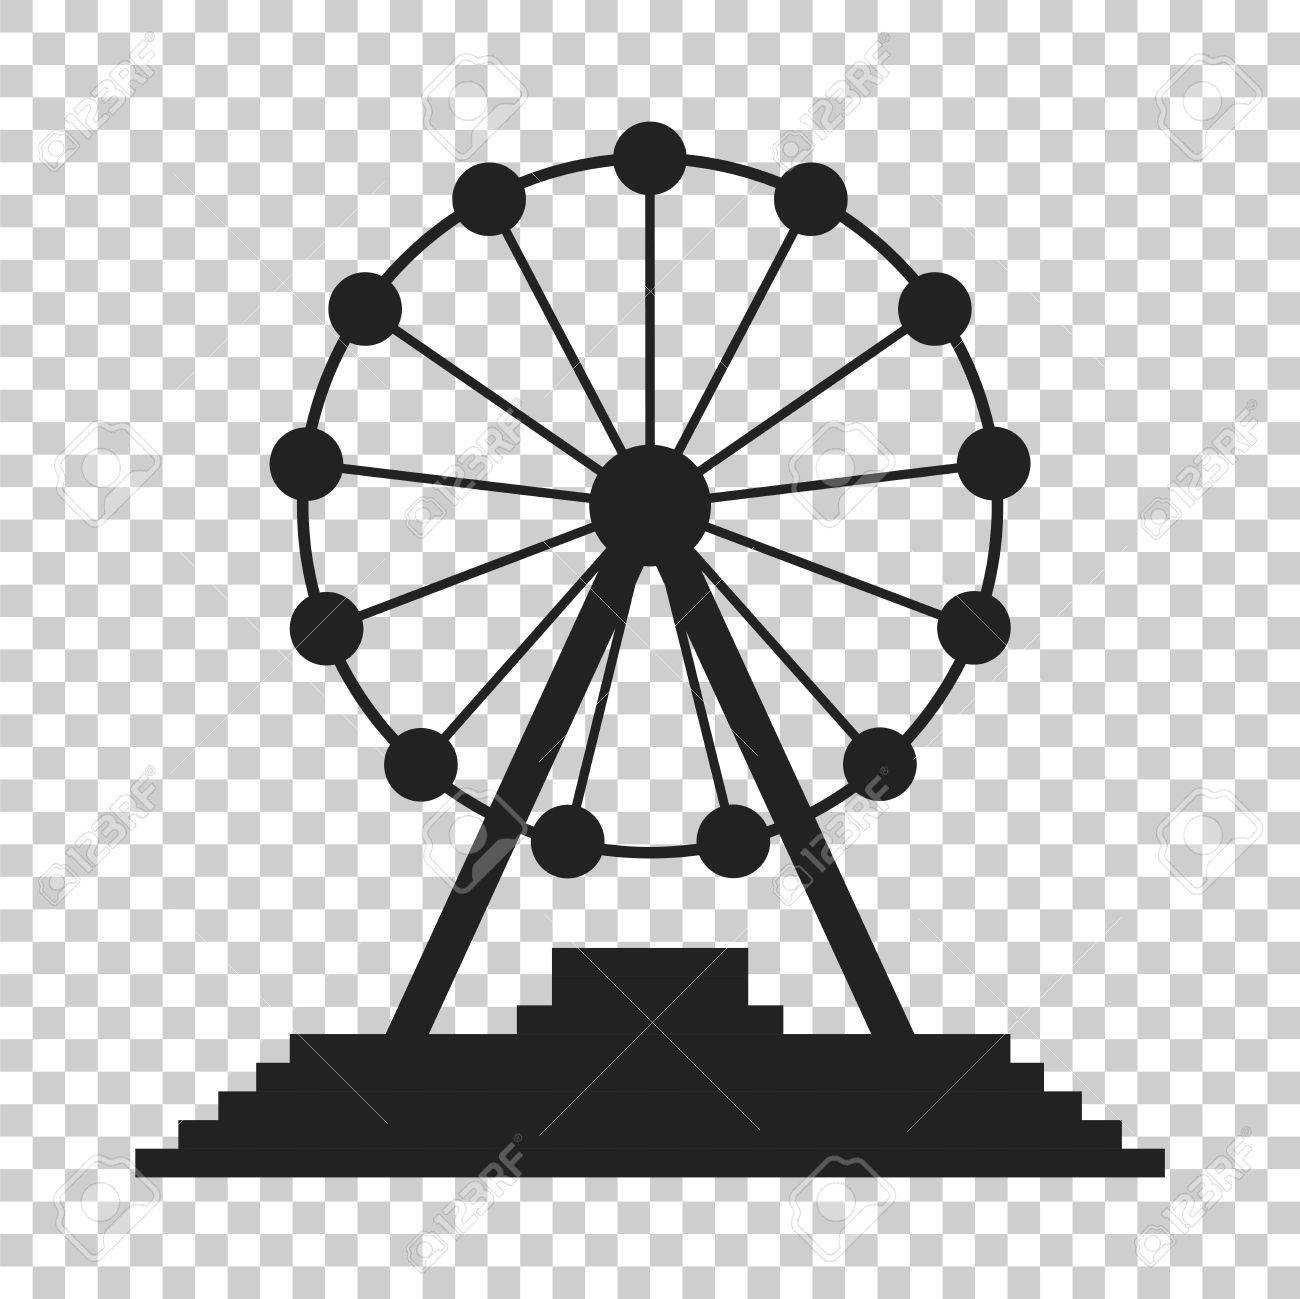 Ferris Wheel Vector Icon Carousel In Park Icon Amusement Ride Royalty Free Cliparts Vectors And Stock Illustration Image 82072075